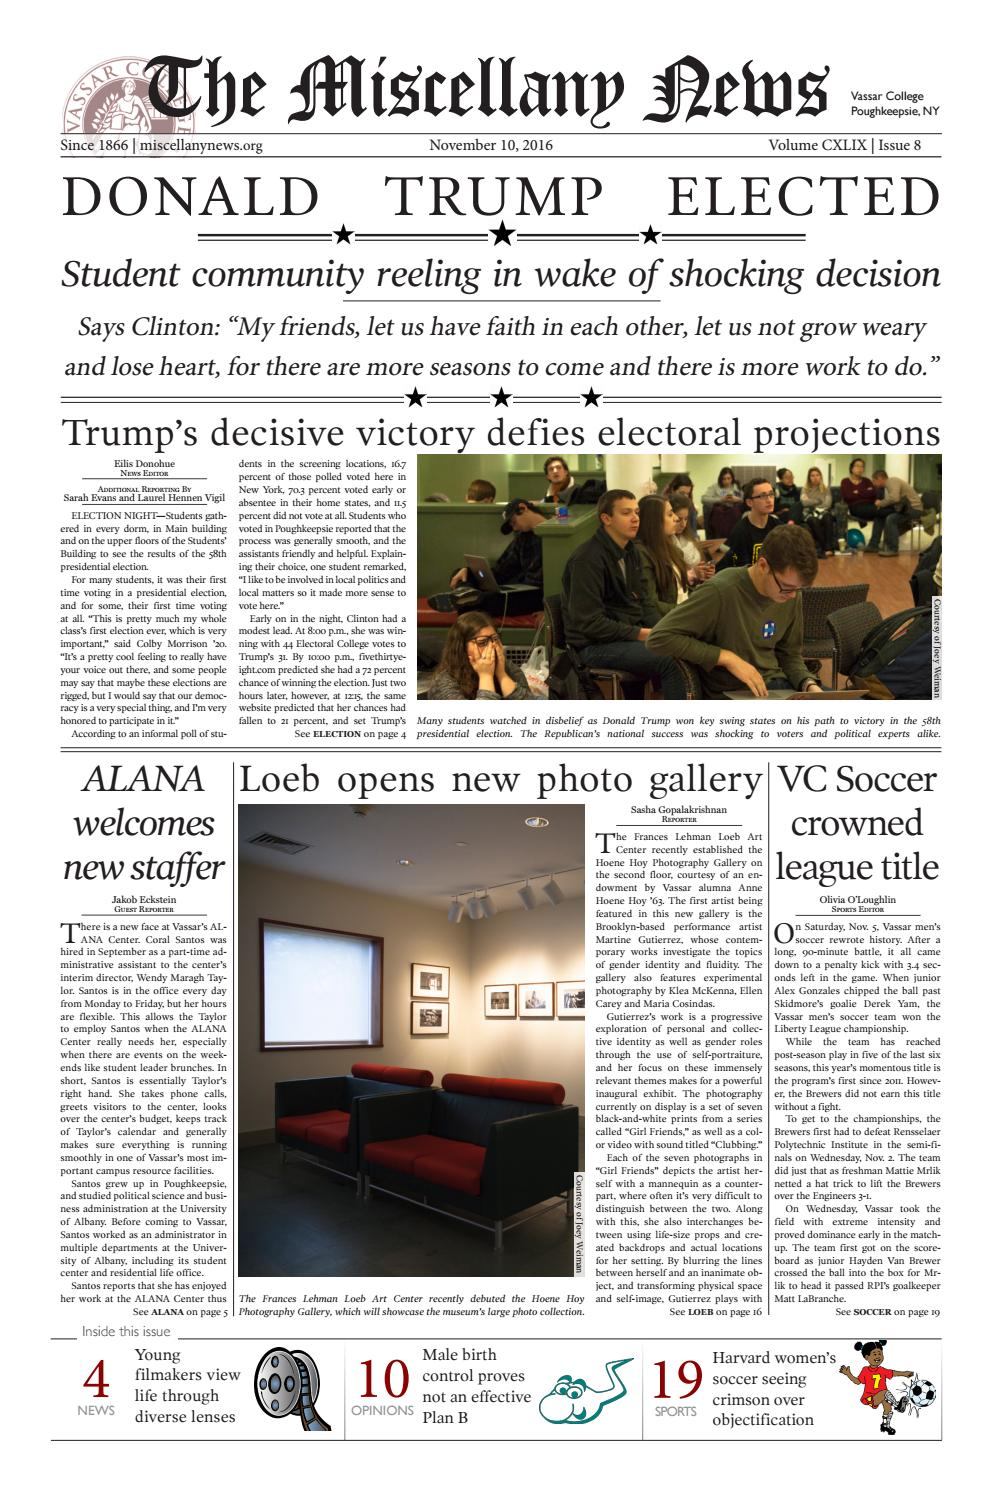 Misc11 10 16print by The Miscellany News - issuu